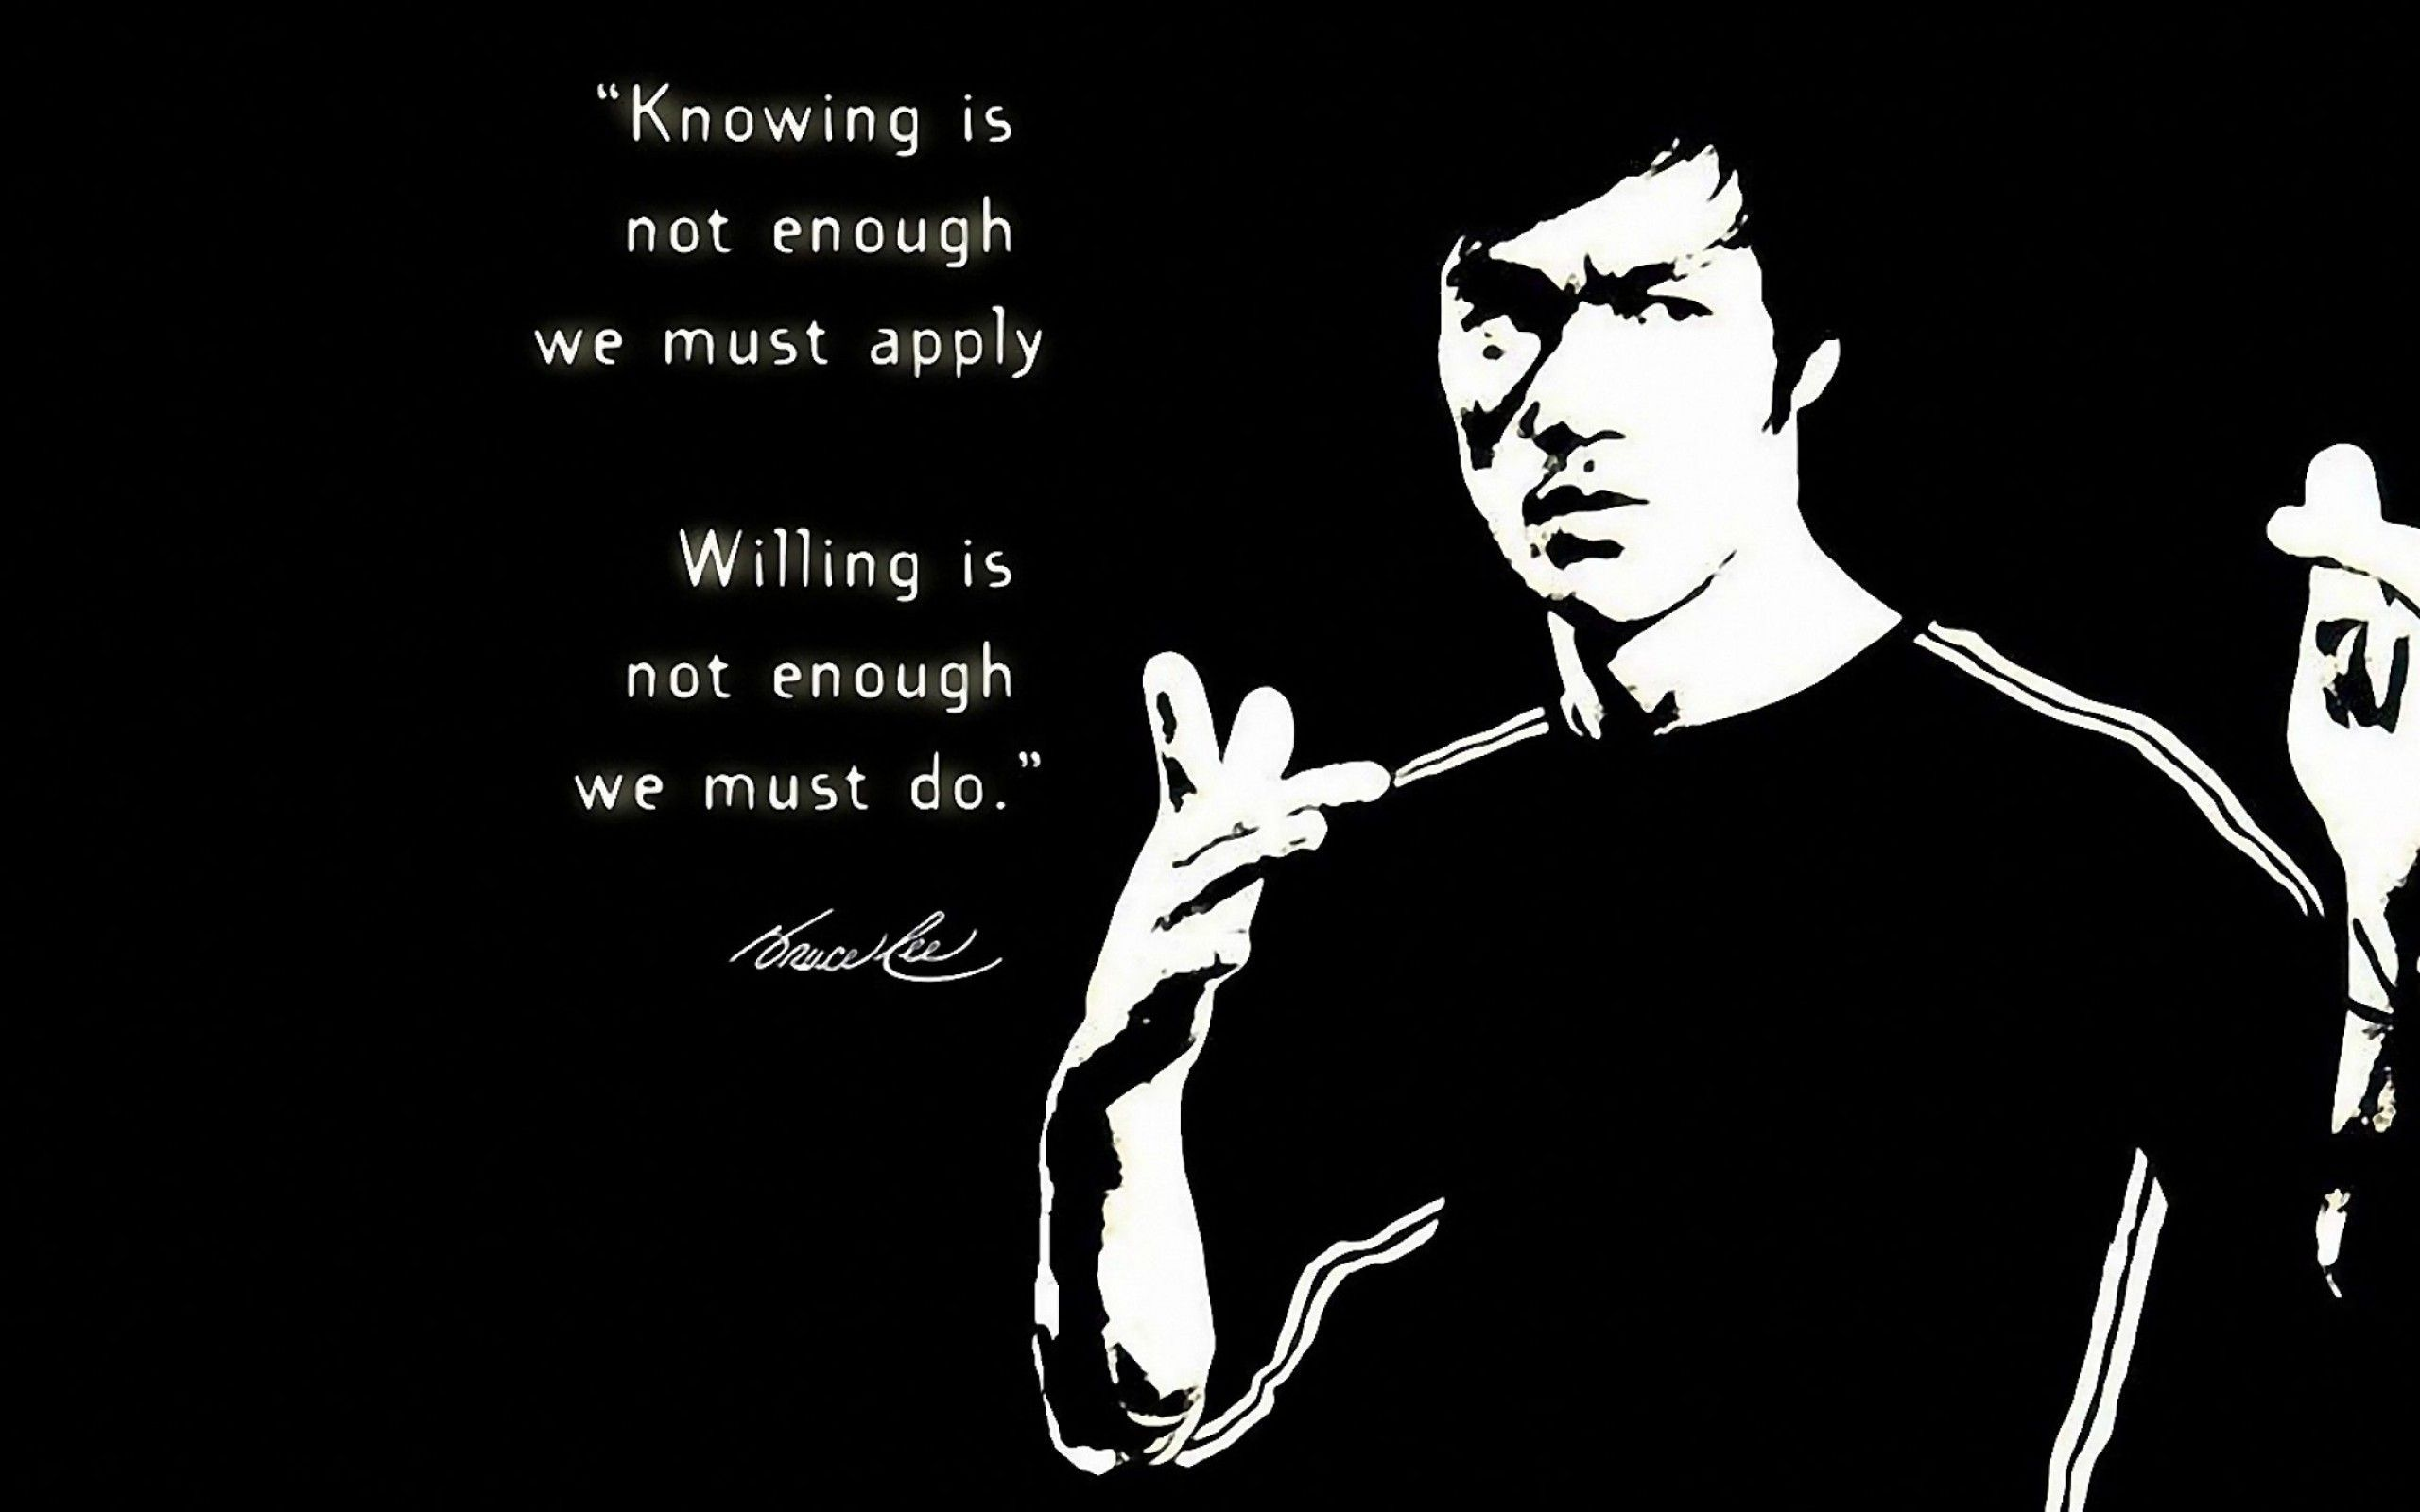 Bruce Lee Wallpaper Quotes 102 images in Collection Page 1 2560x1600